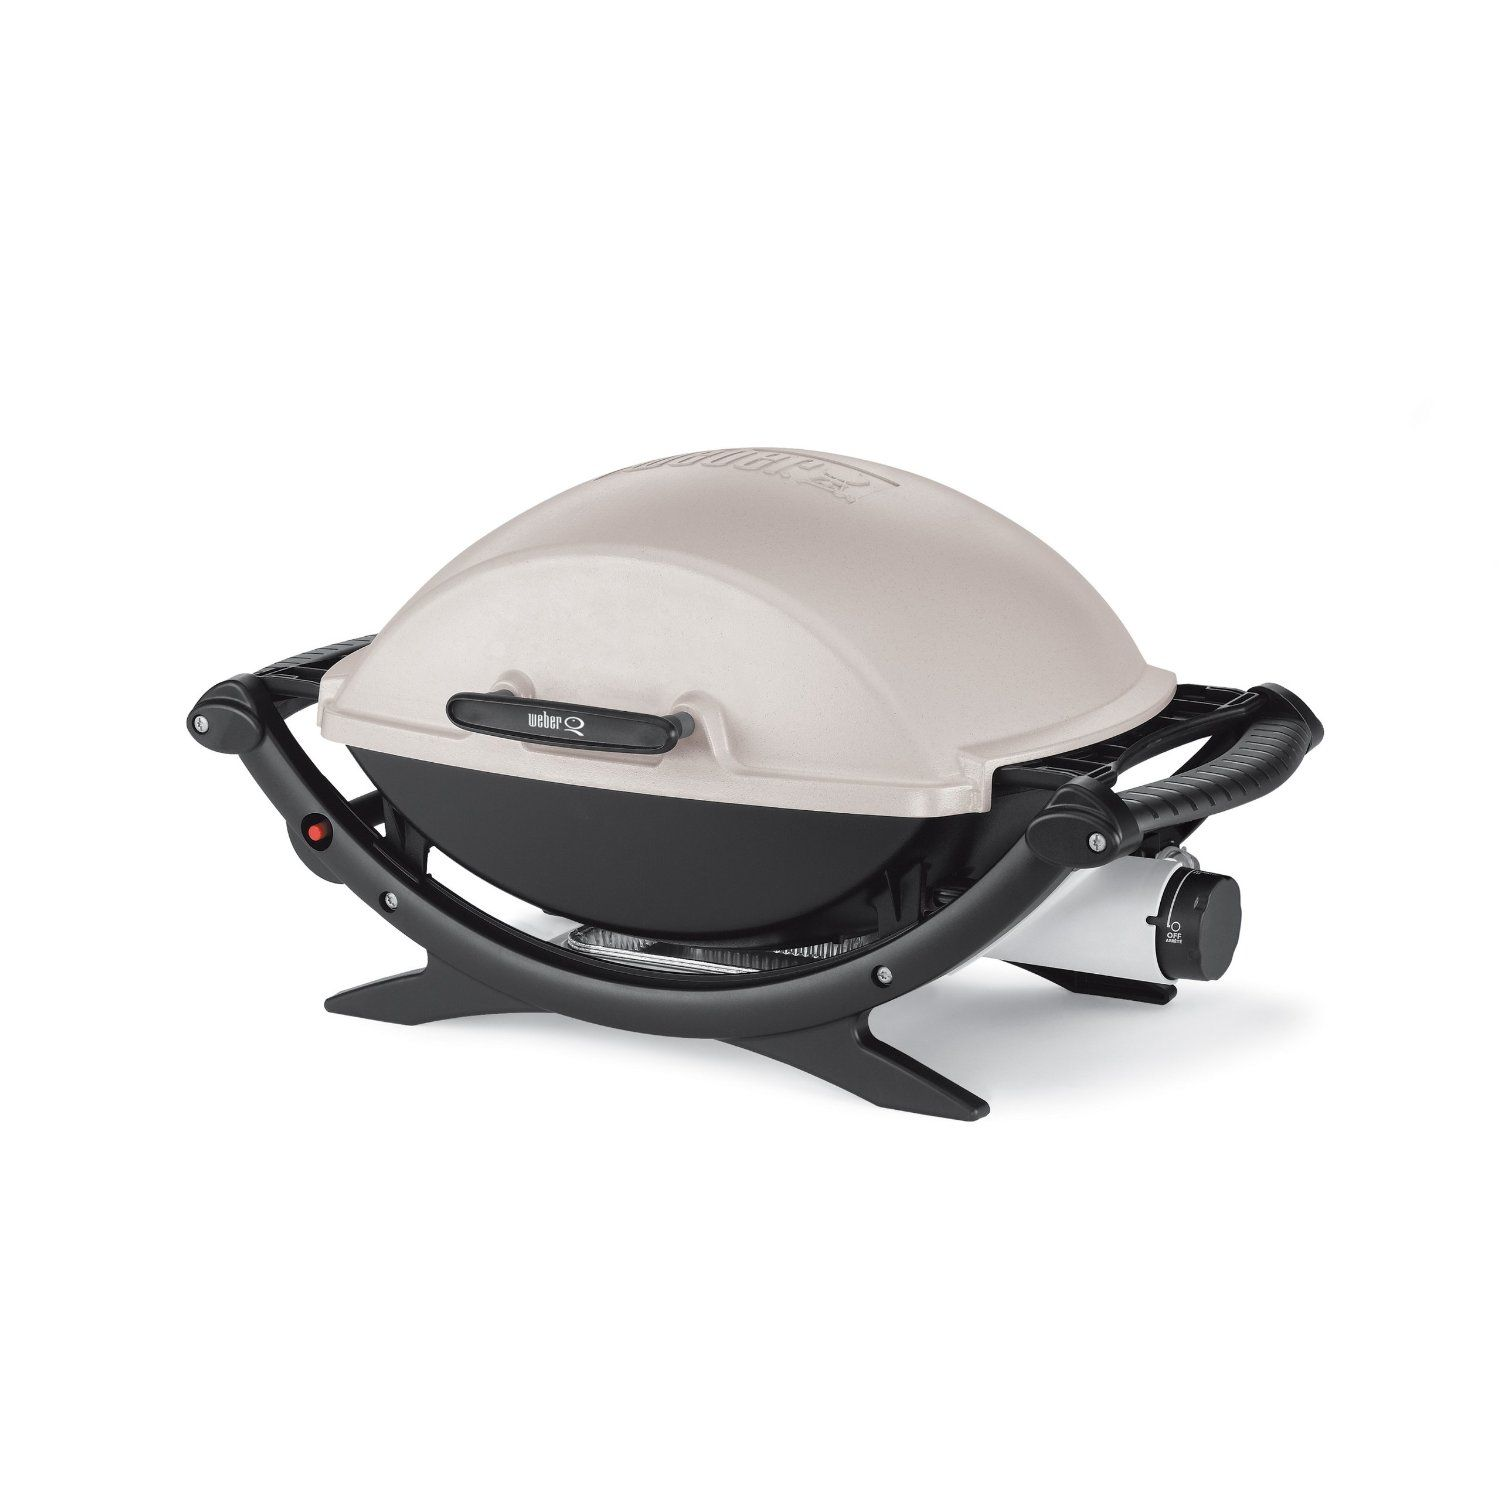 Weber Q 200 1200 Btus Of Grilling Power So Worth It Weber Gas